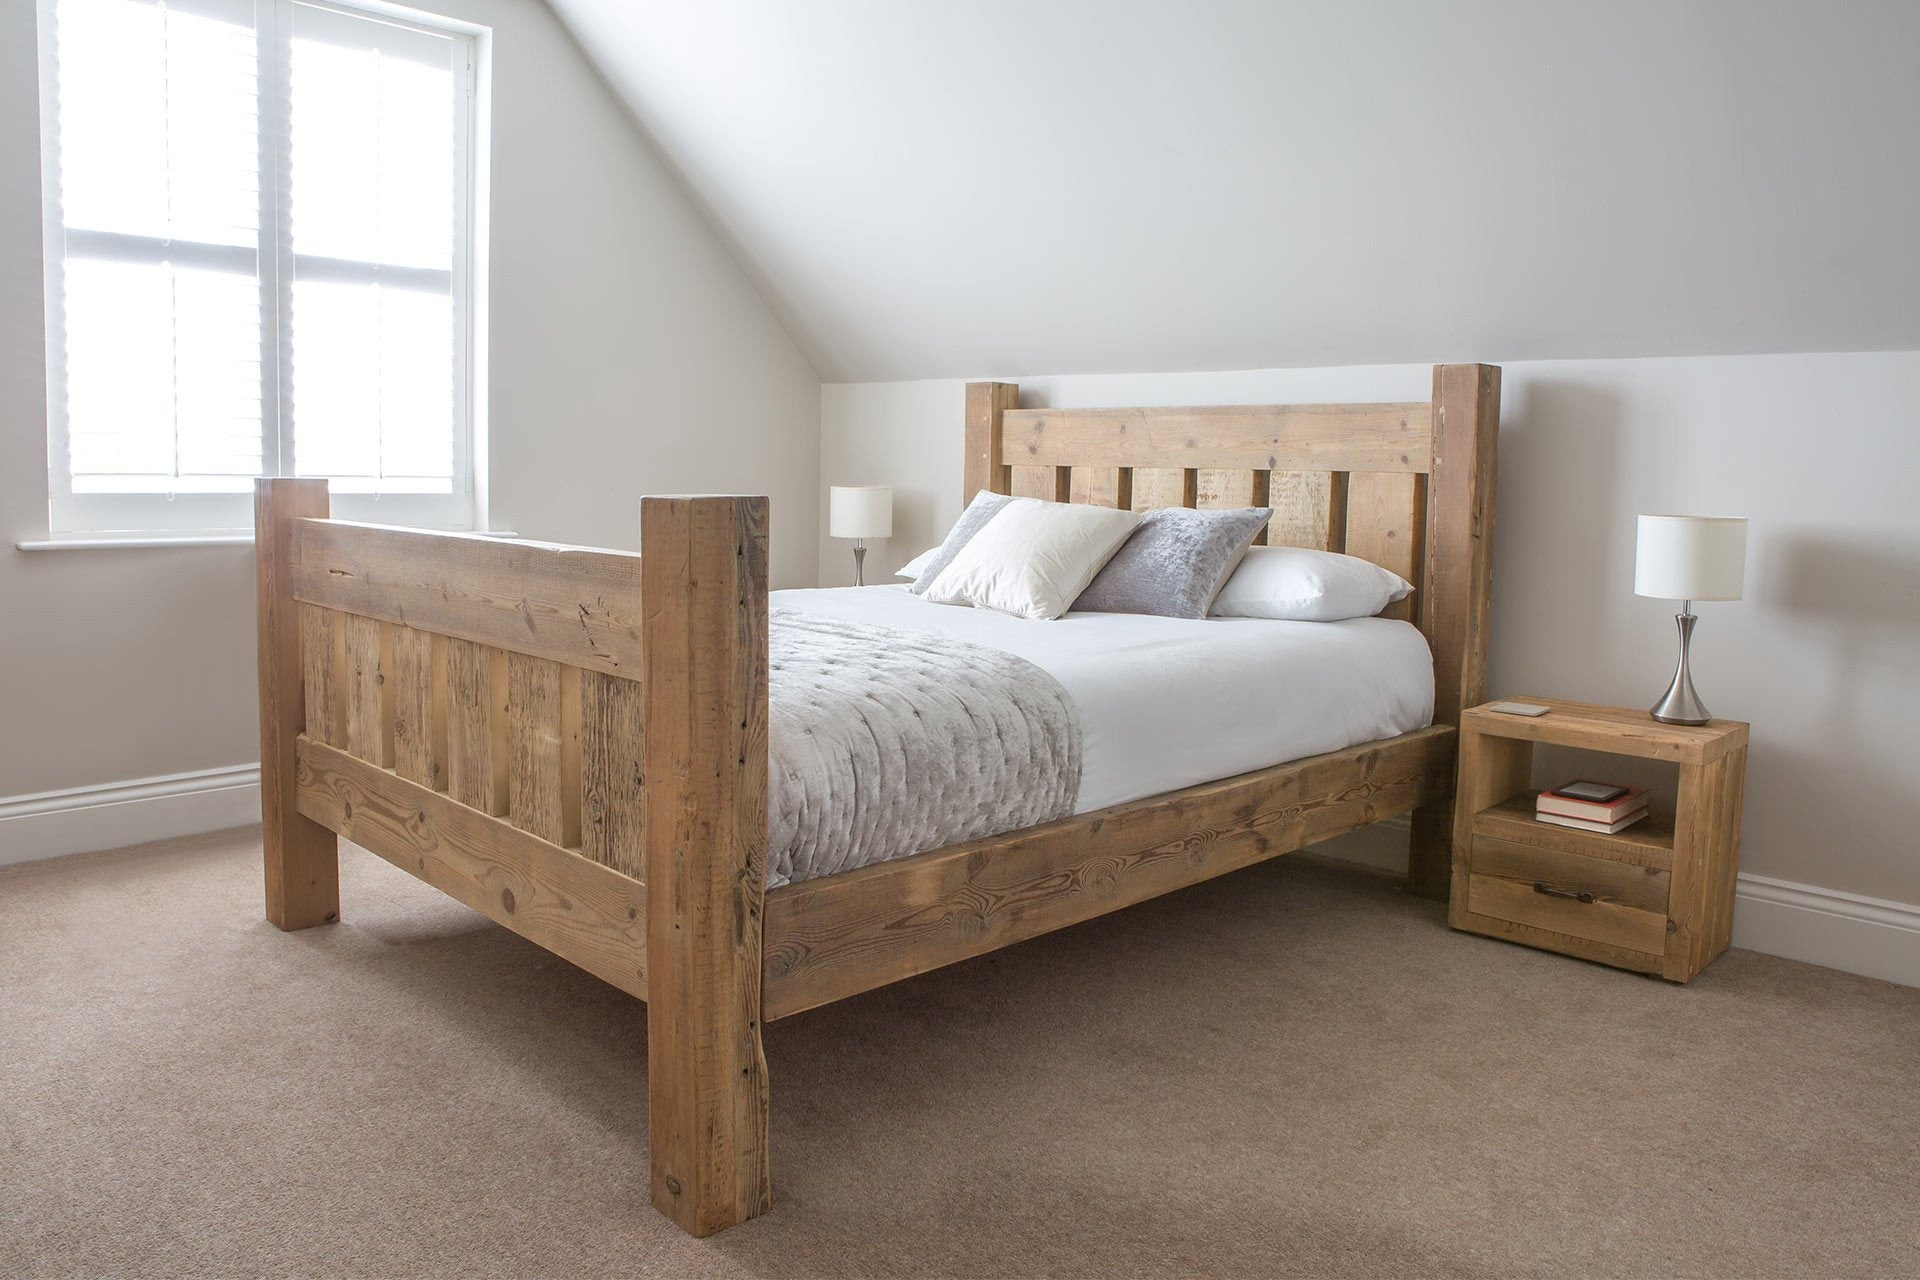 Natural Kingsize Bed With Branson 1 Drawer Bedsides (Sold Separately)